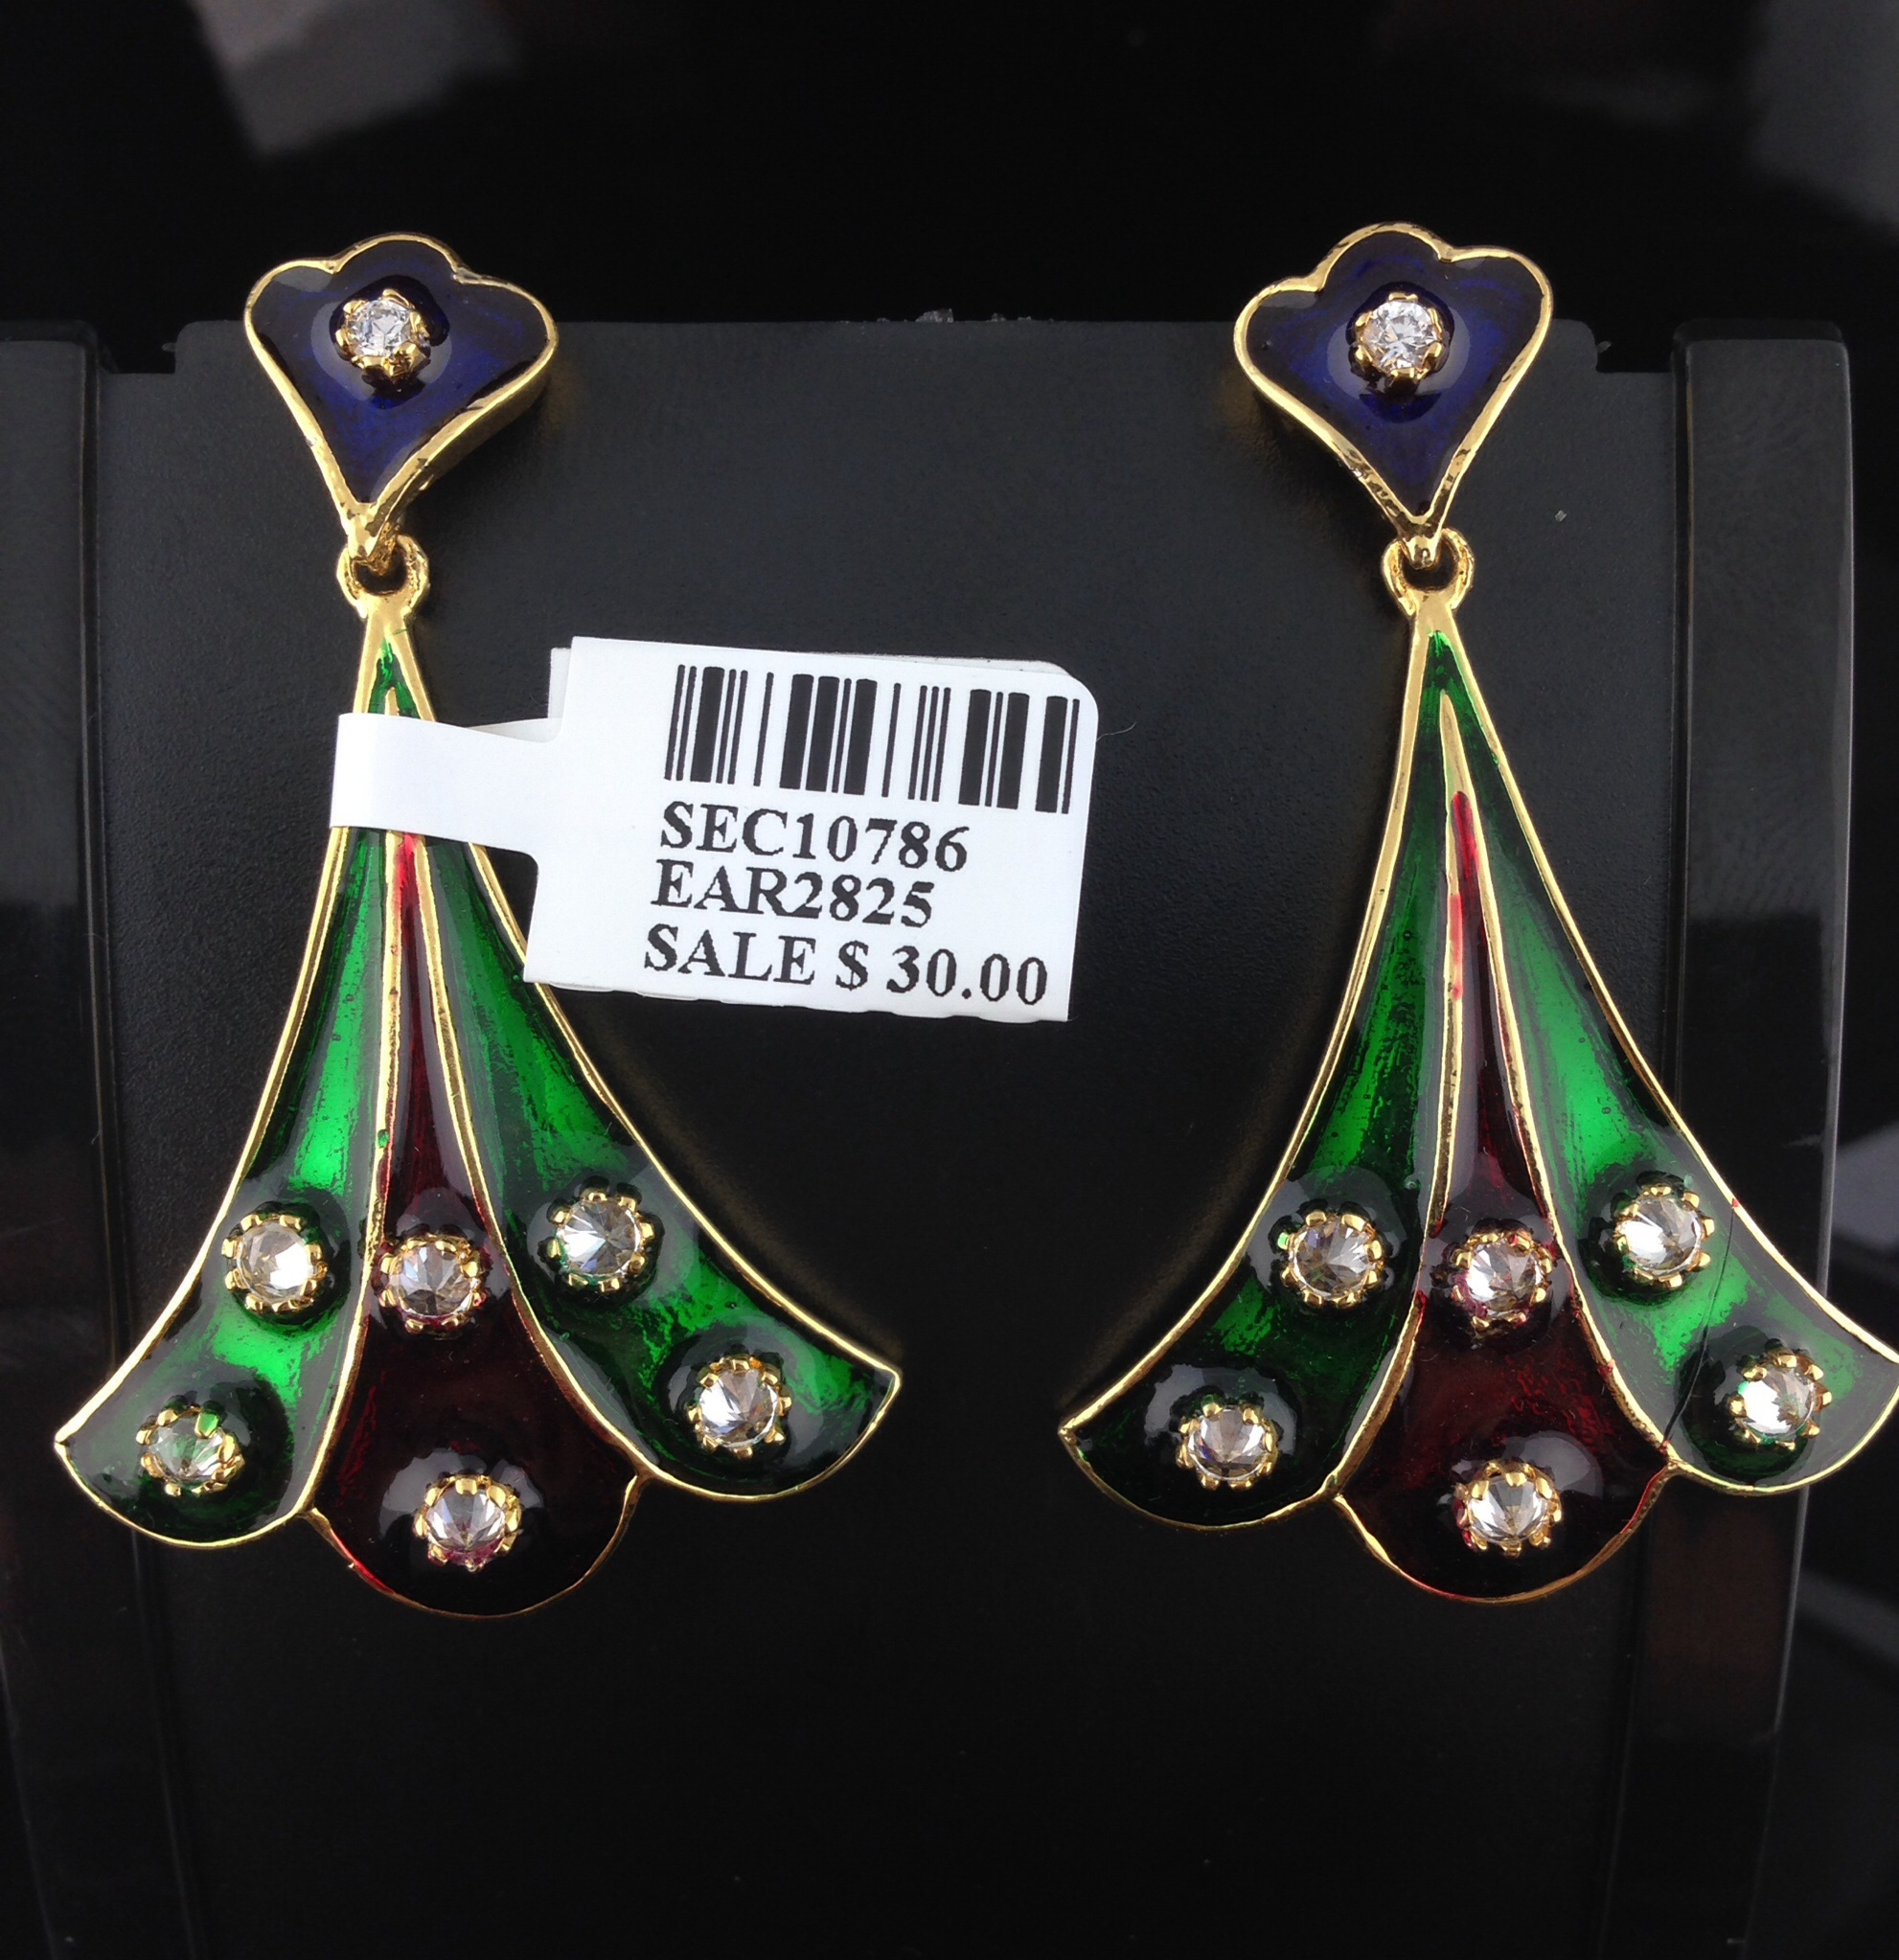 Beautiful earrings with stones